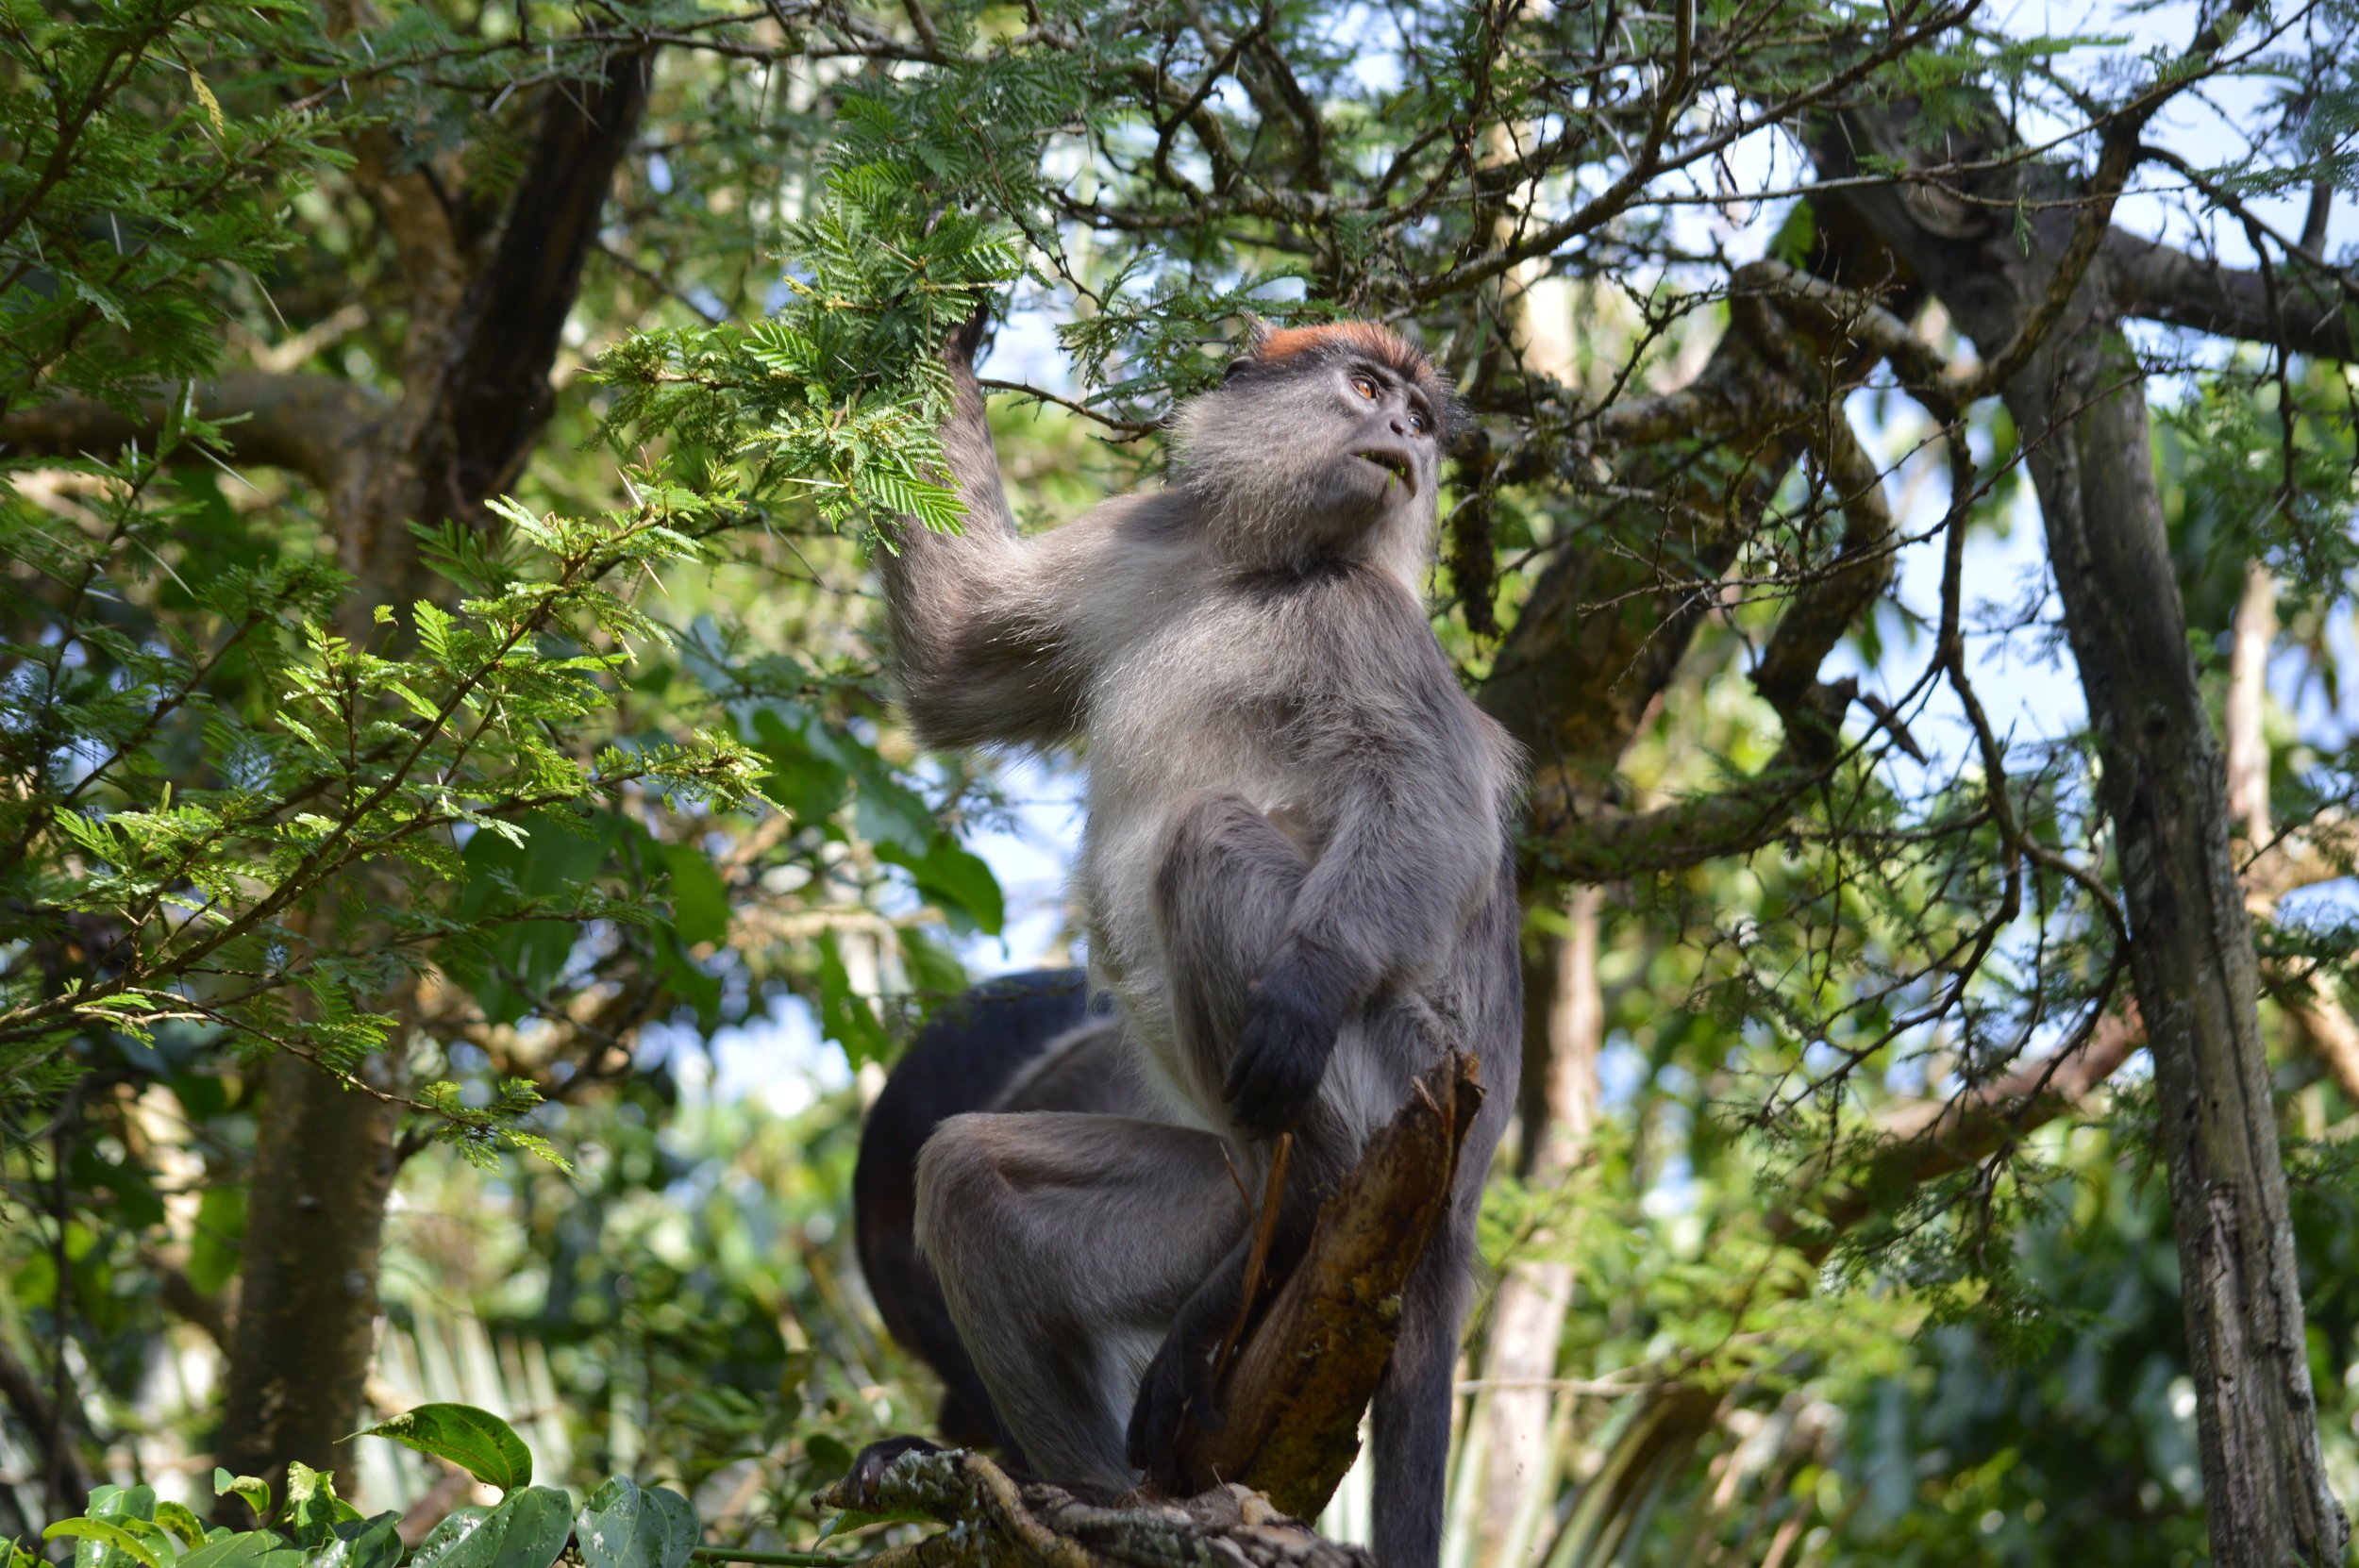 The lucky monkey will gaze at you on your way to spice-up your mountain gorillas trekking experince